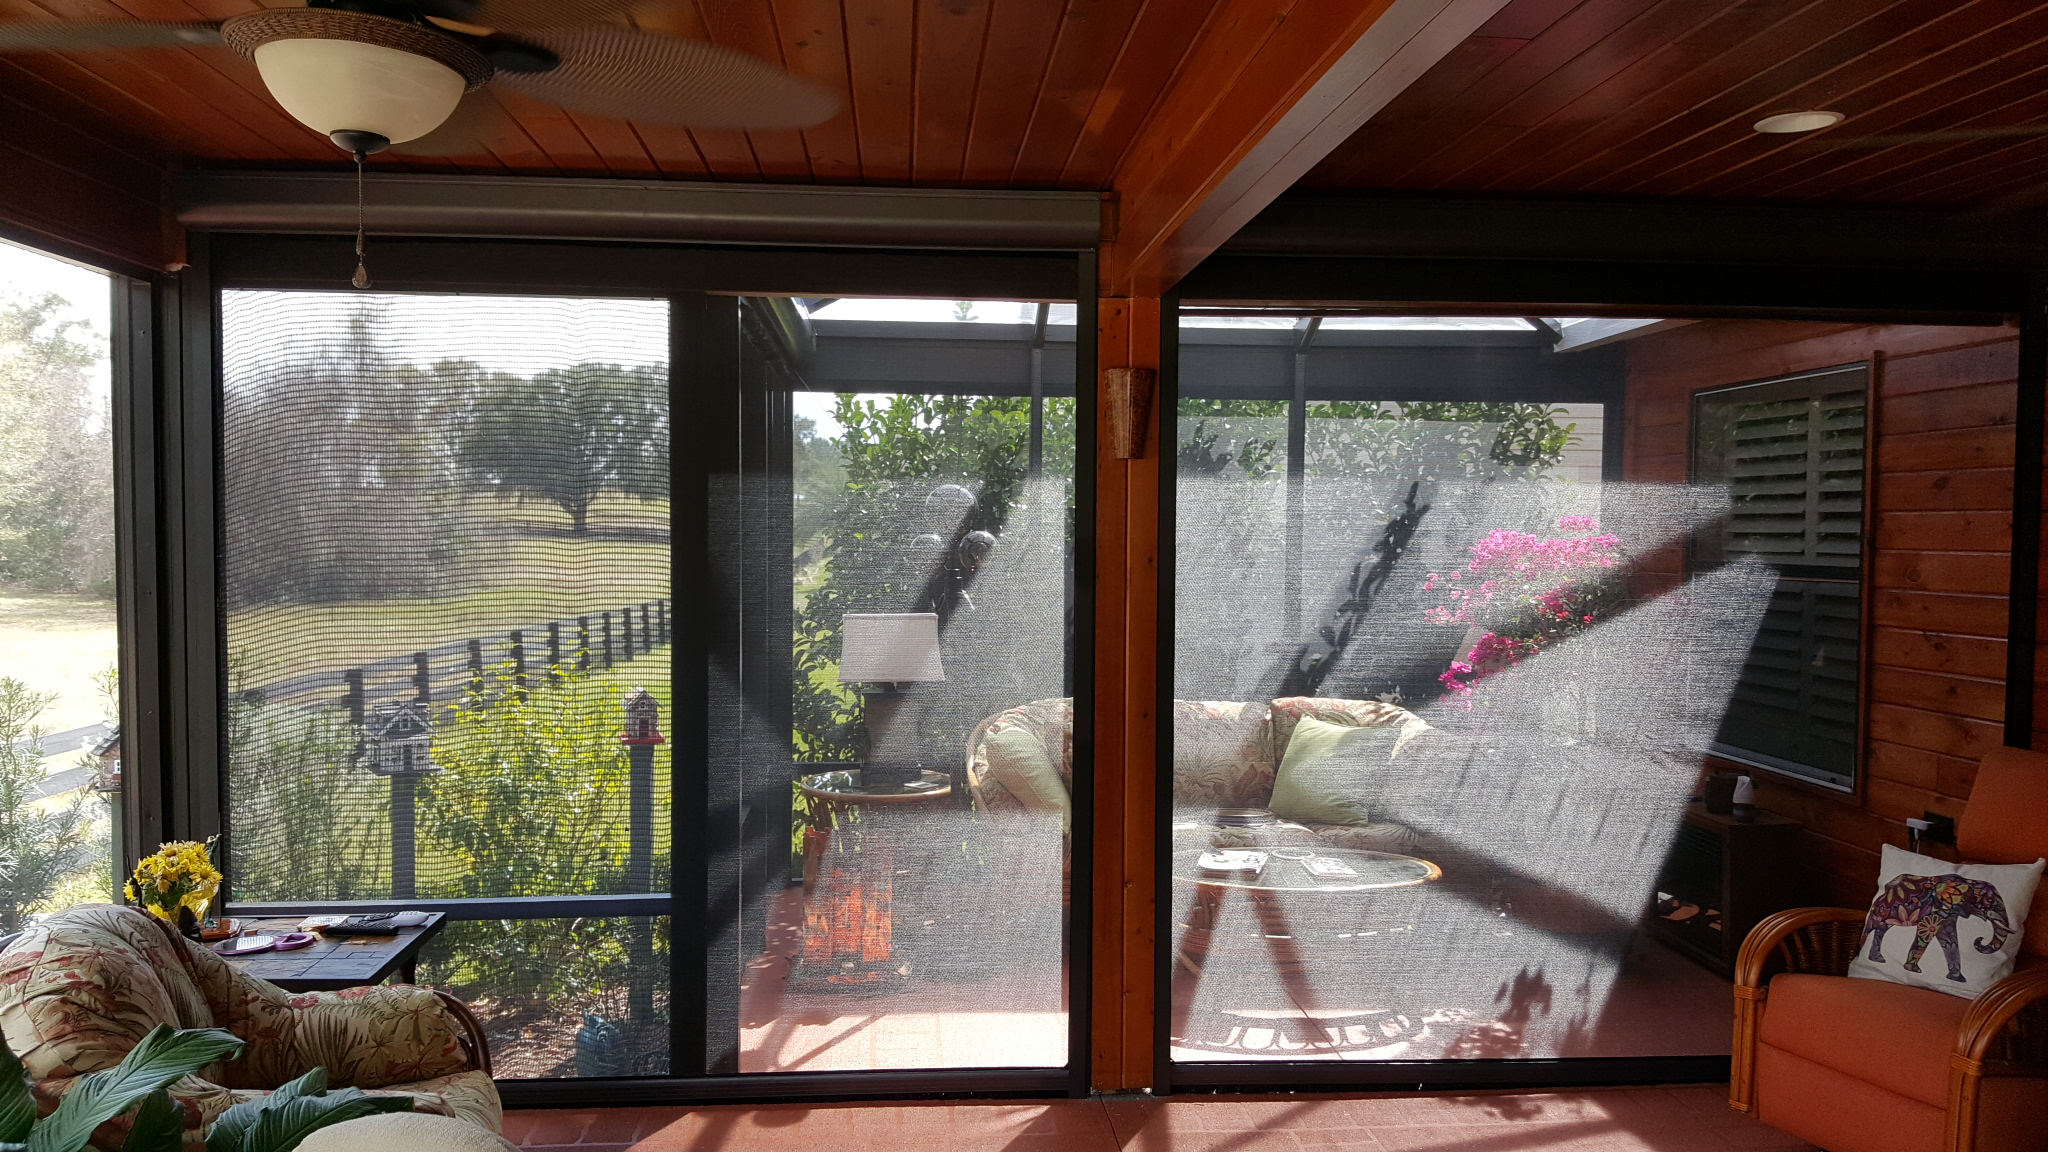 blinds by of solar custom sunrooms awnings pittsburgh shades room sunroom betterliving sun exterior